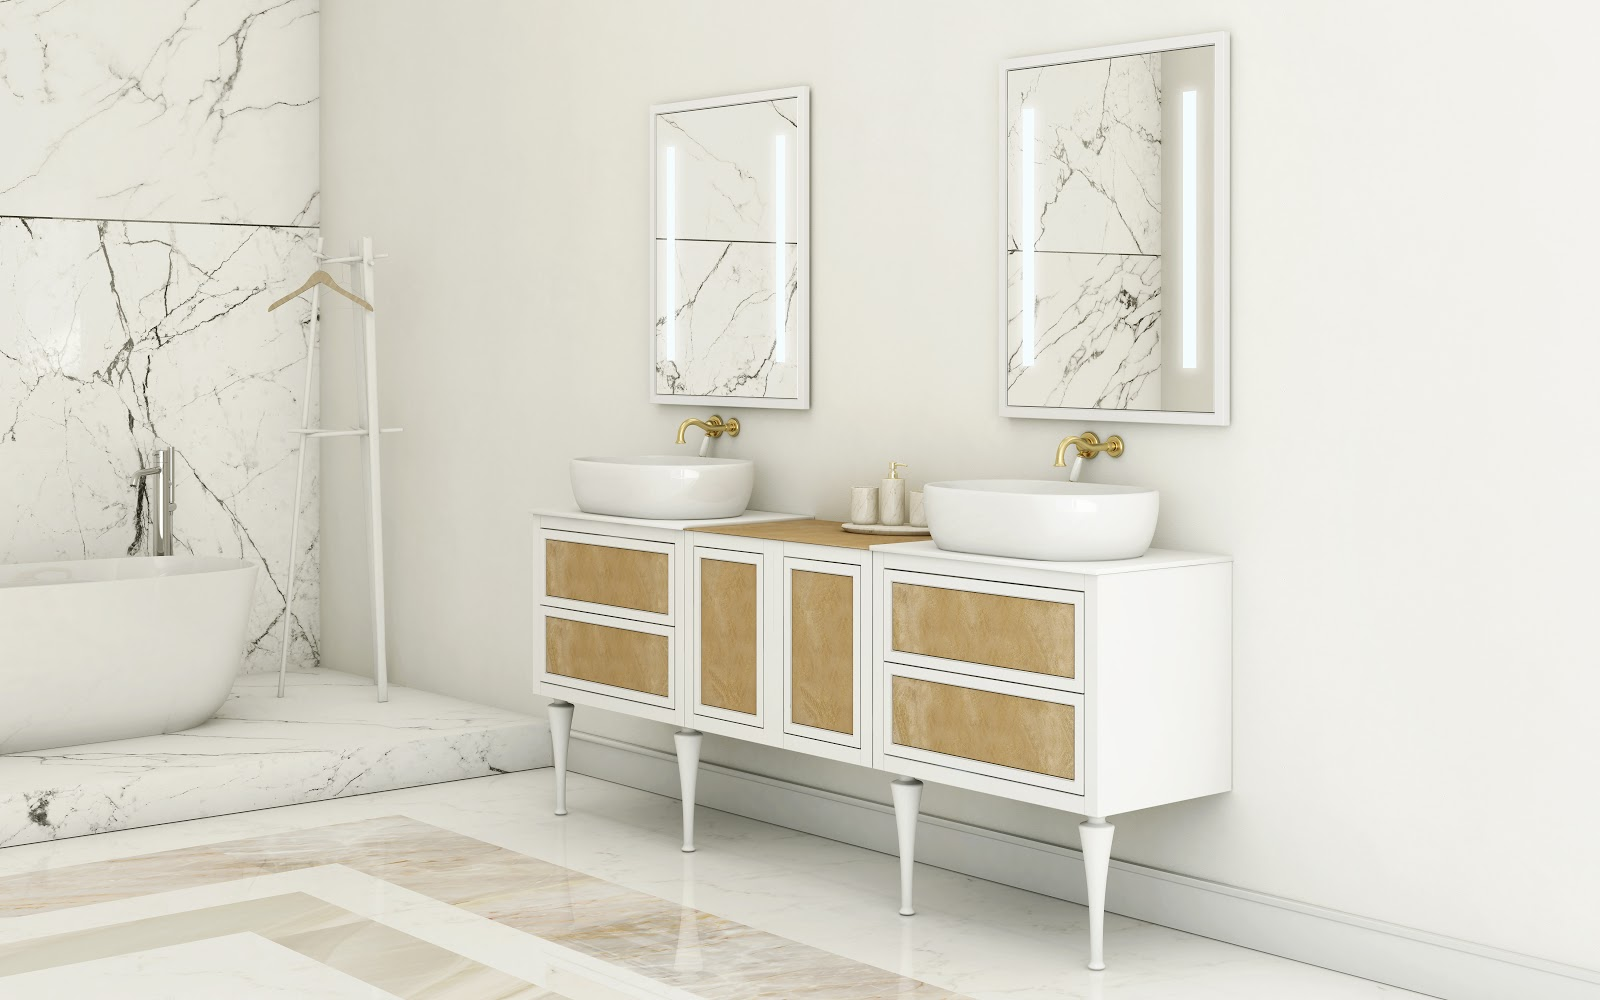 Stunning The golden shimmering glass brings that ugolden age u feel to the bath ud says the designer